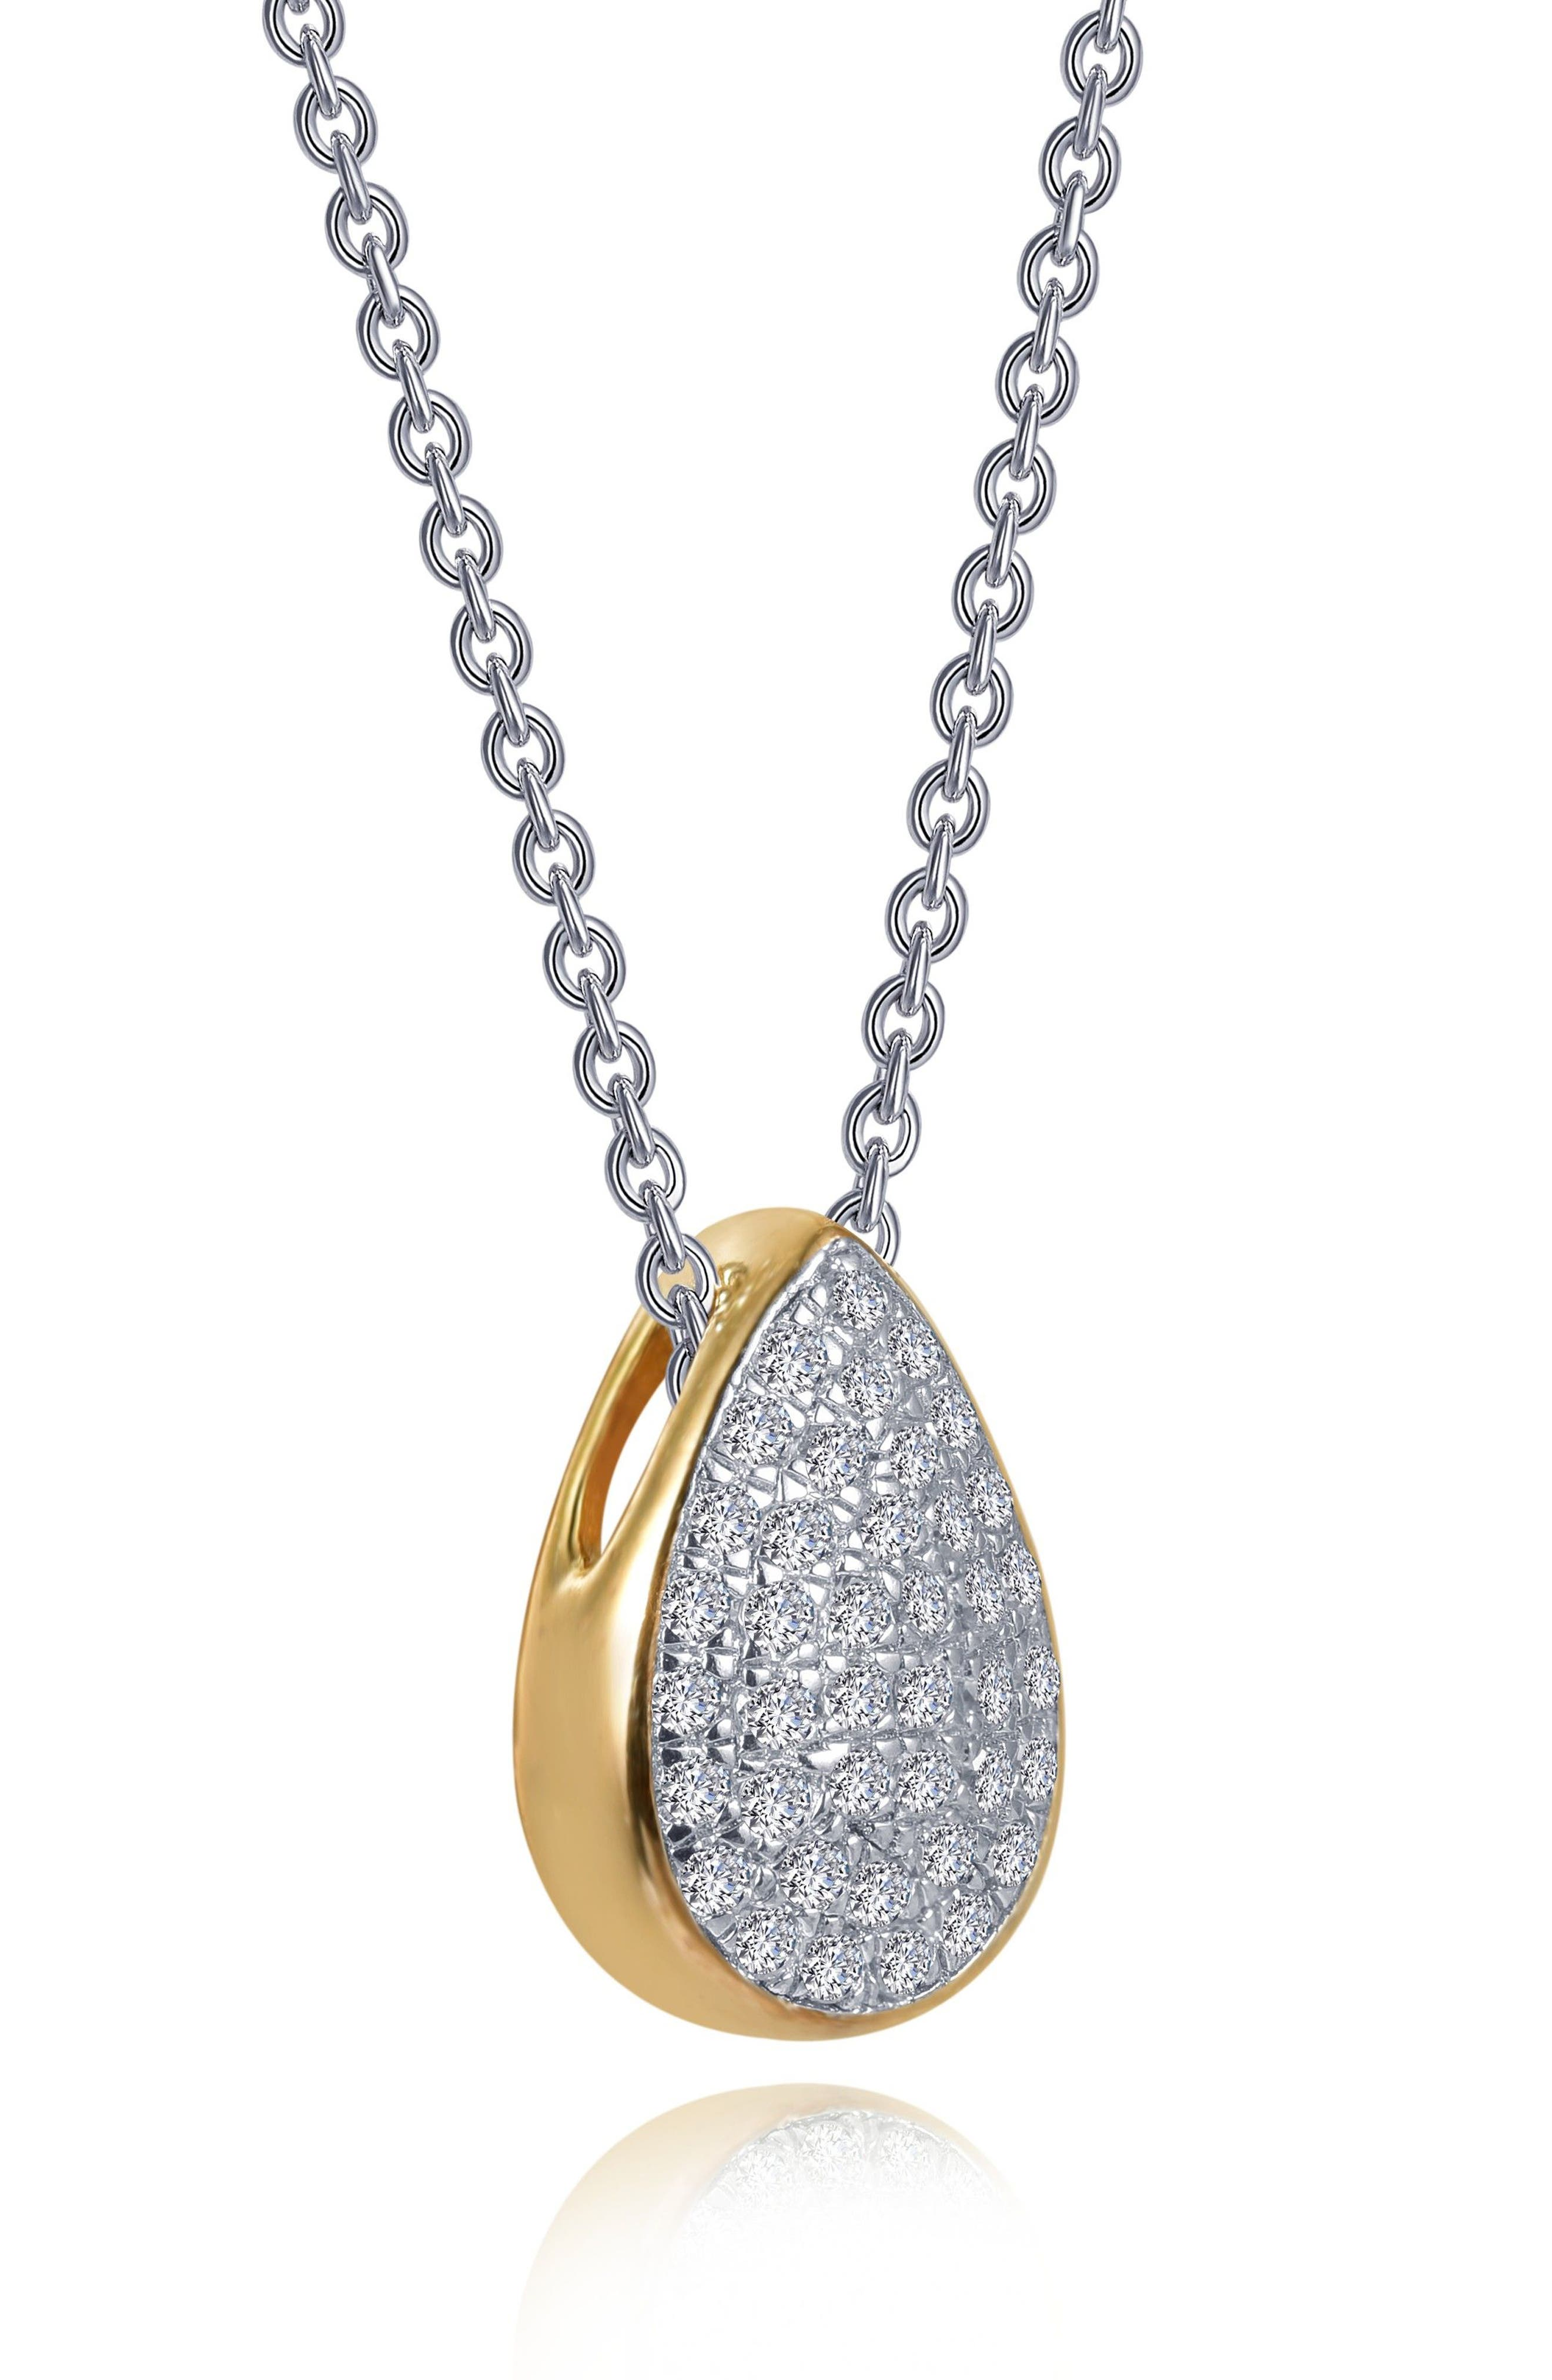 Two-Tone Pear Shape Choker Necklace,                             Alternate thumbnail 3, color,                             SILVER/ GOLD/ CLEAR